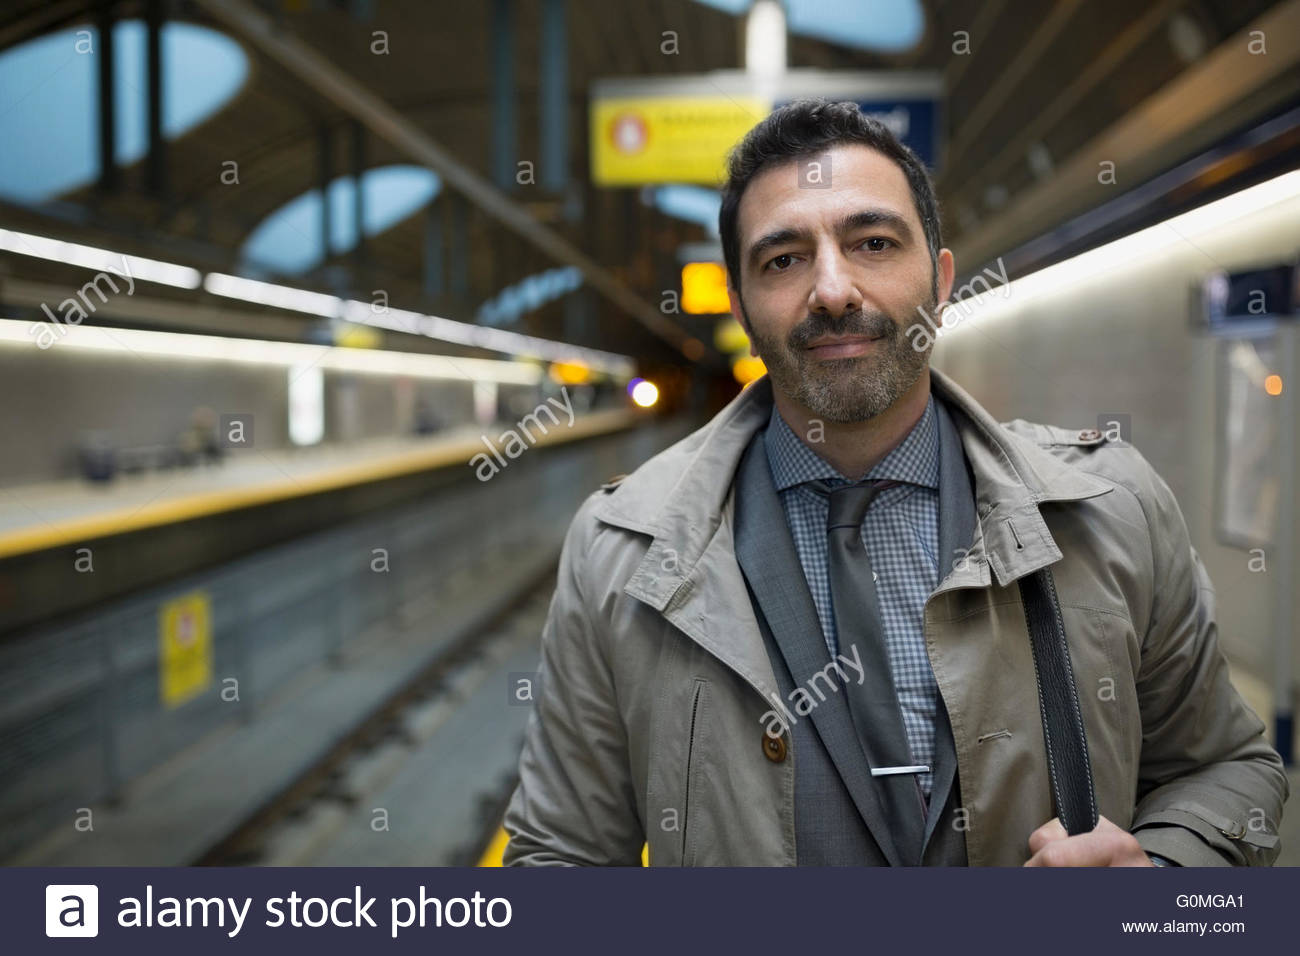 Confident businessman portrait sur la plate-forme de la station de métro Photo Stock